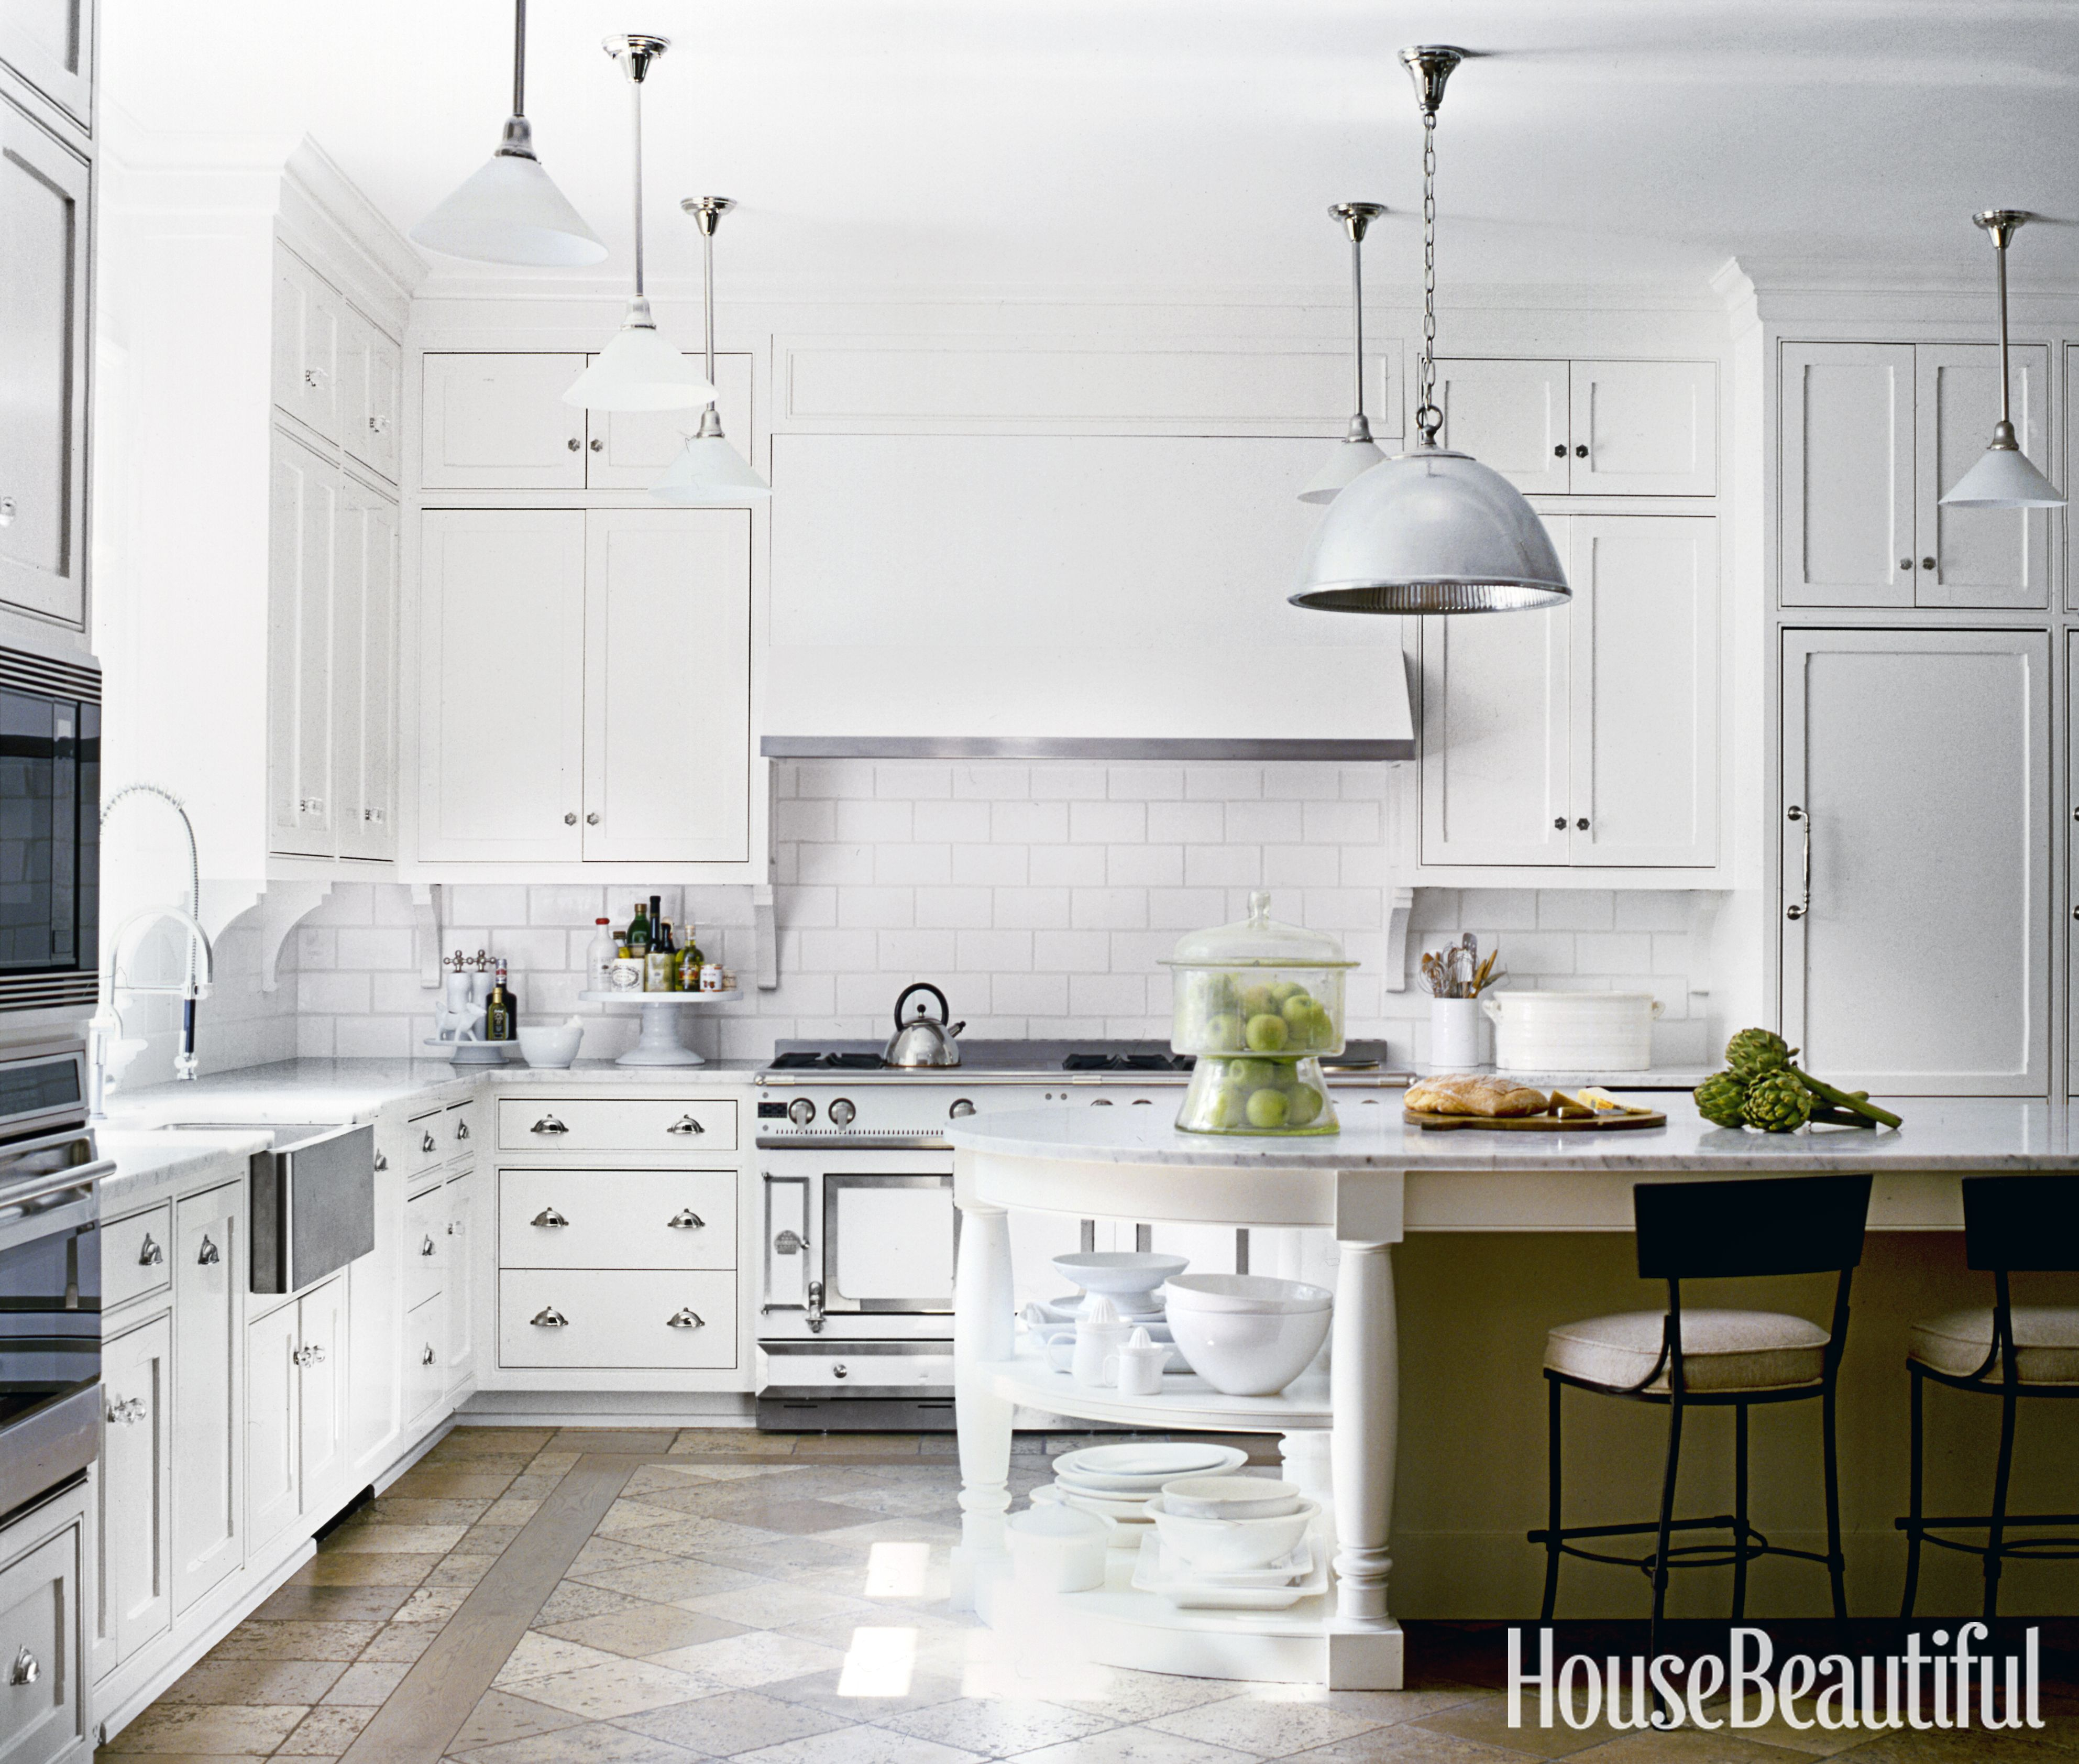 photos of kitchens what is the best paint for kitchen cabinets how to make your look expensive cheap updates 10 ways